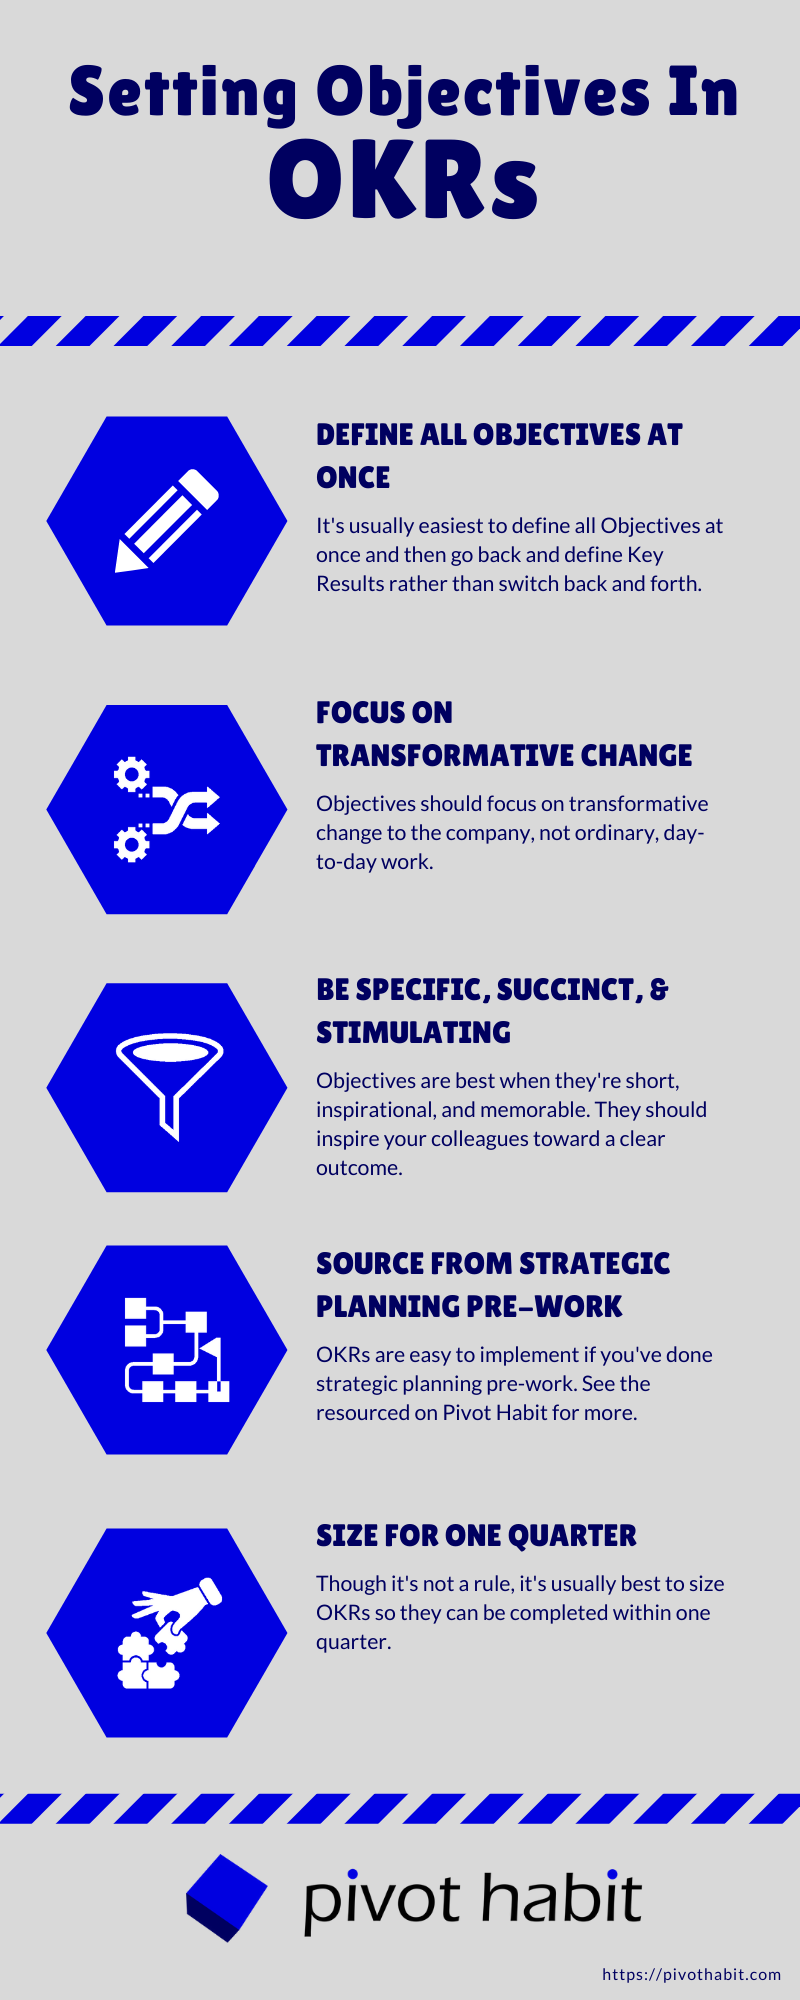 Five best practices for setting Objectives in OKRs.